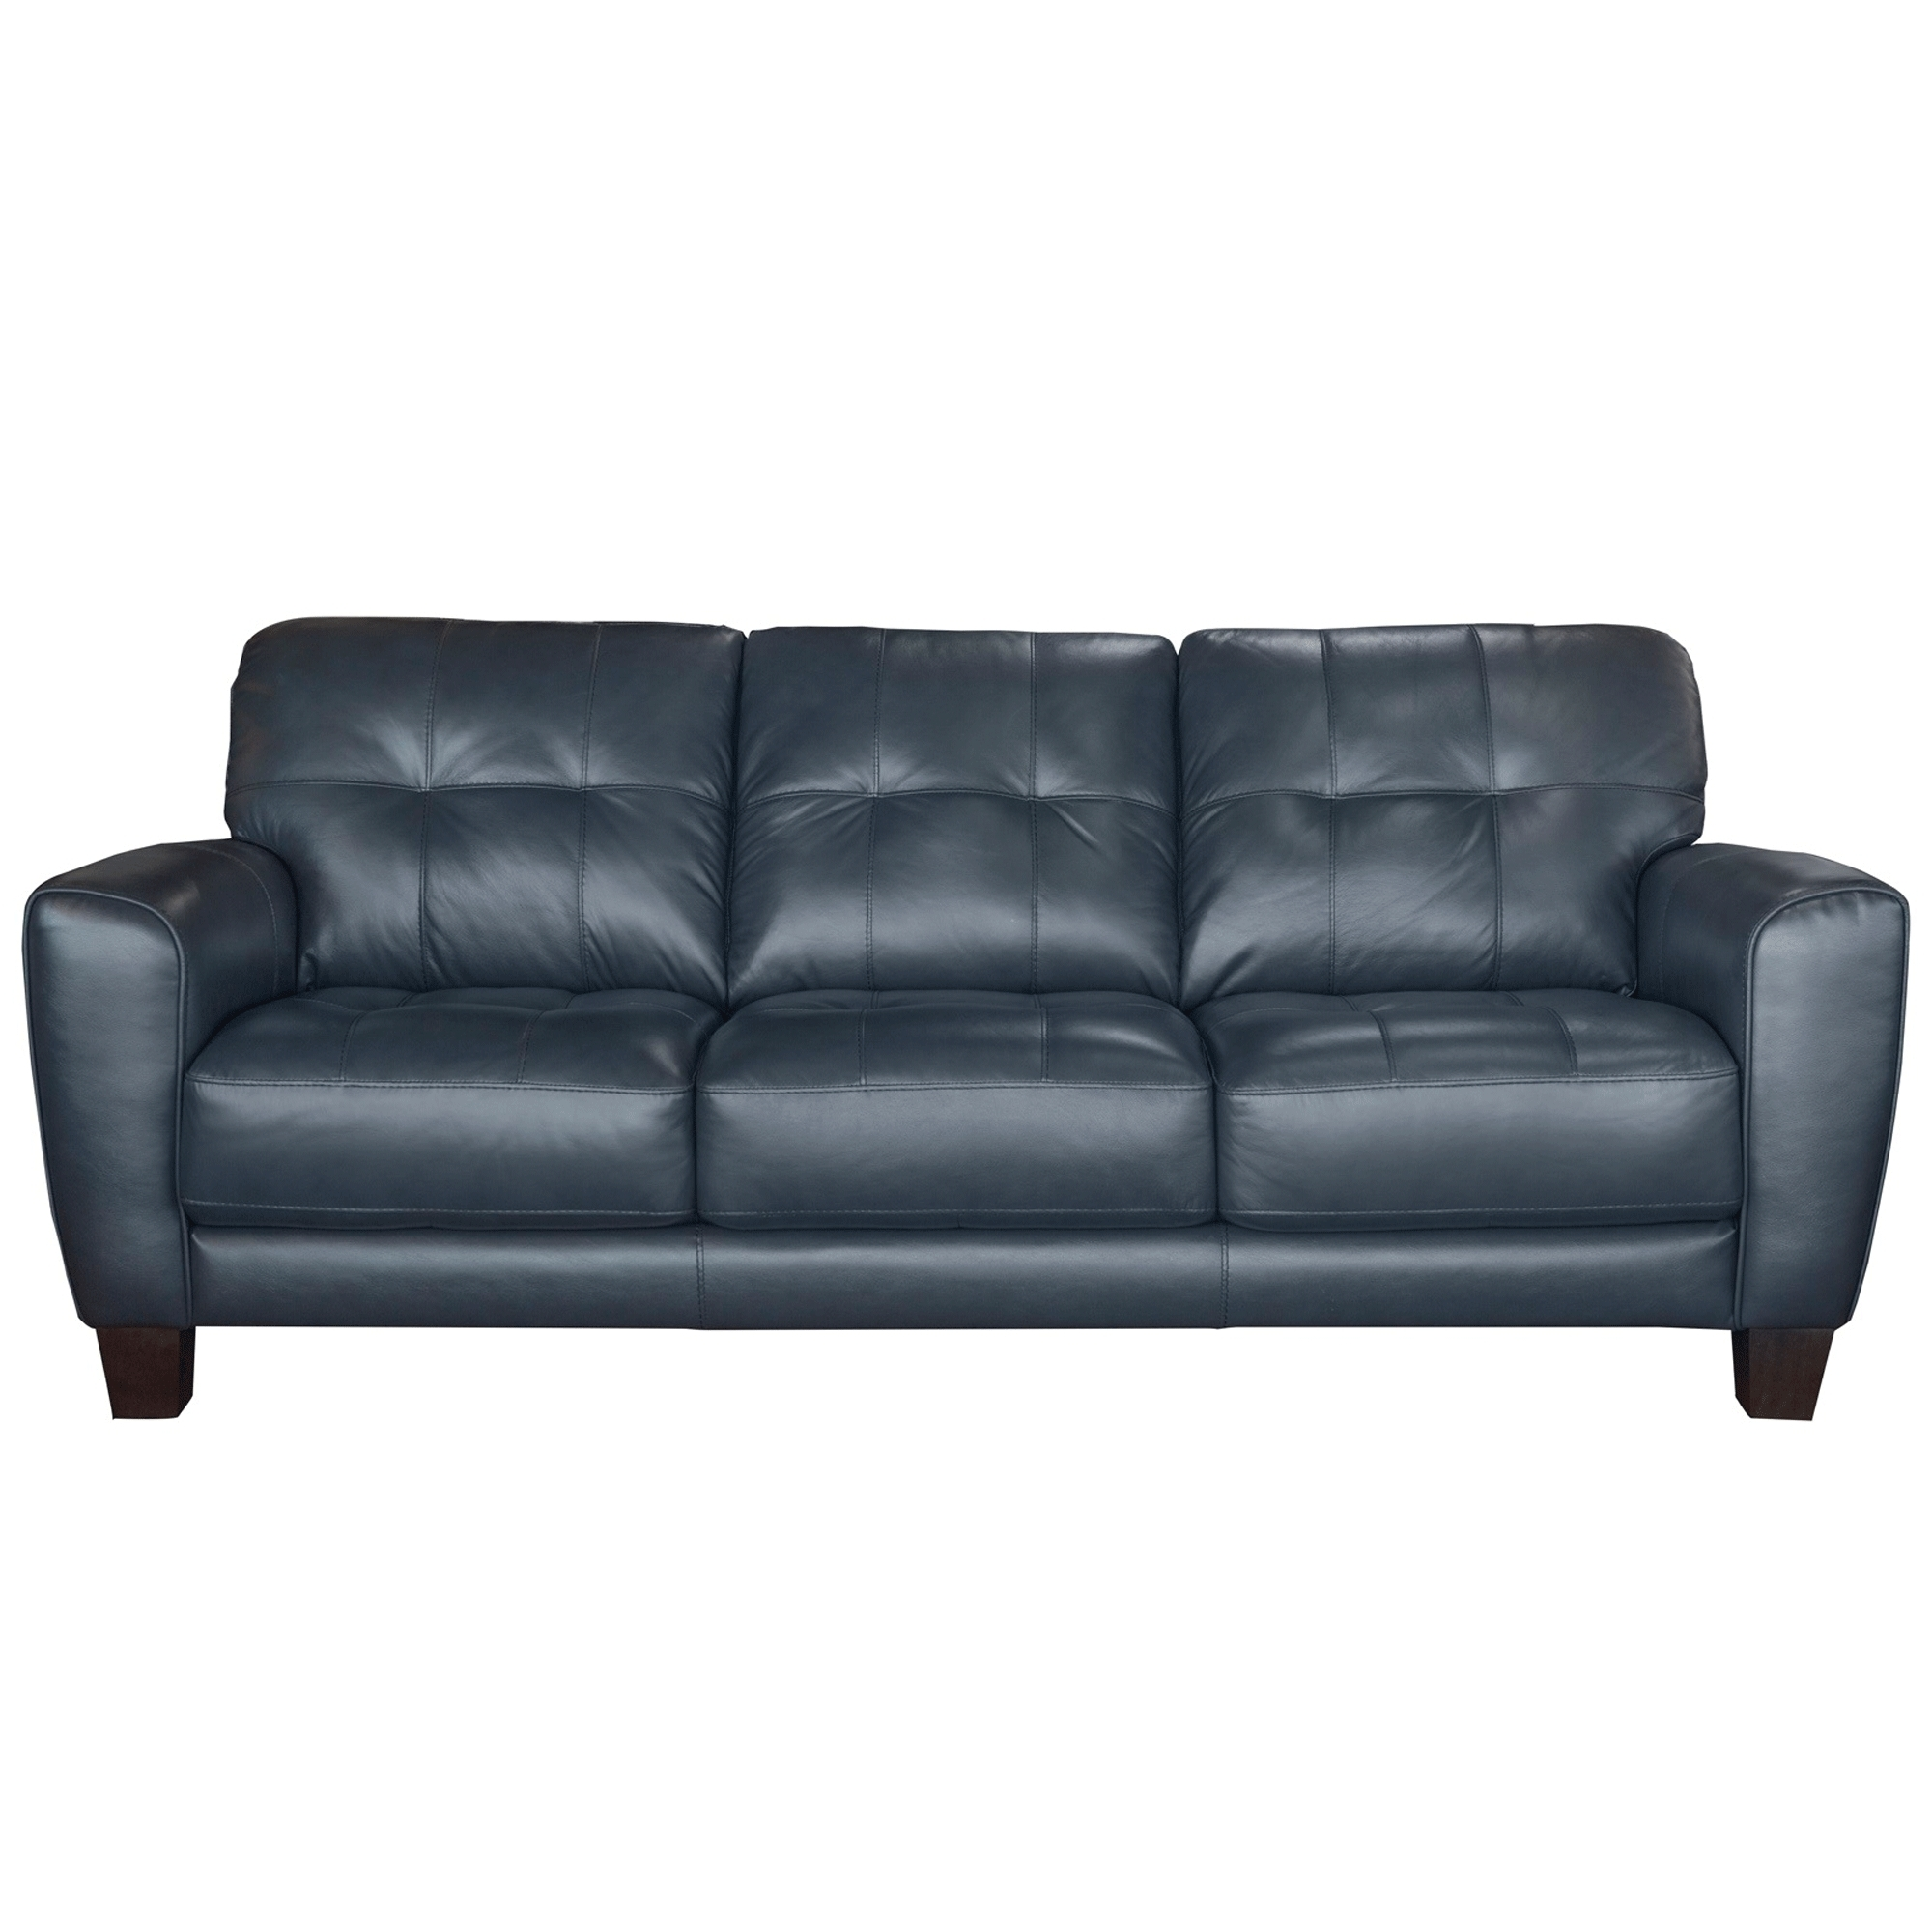 Ikea Uk Living Room Furniture: 10 The Best Philippines Sectional Sofas